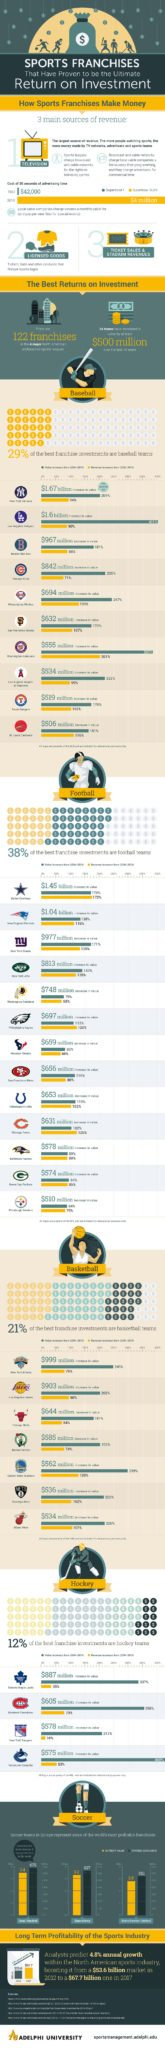 ROI of sports infographic